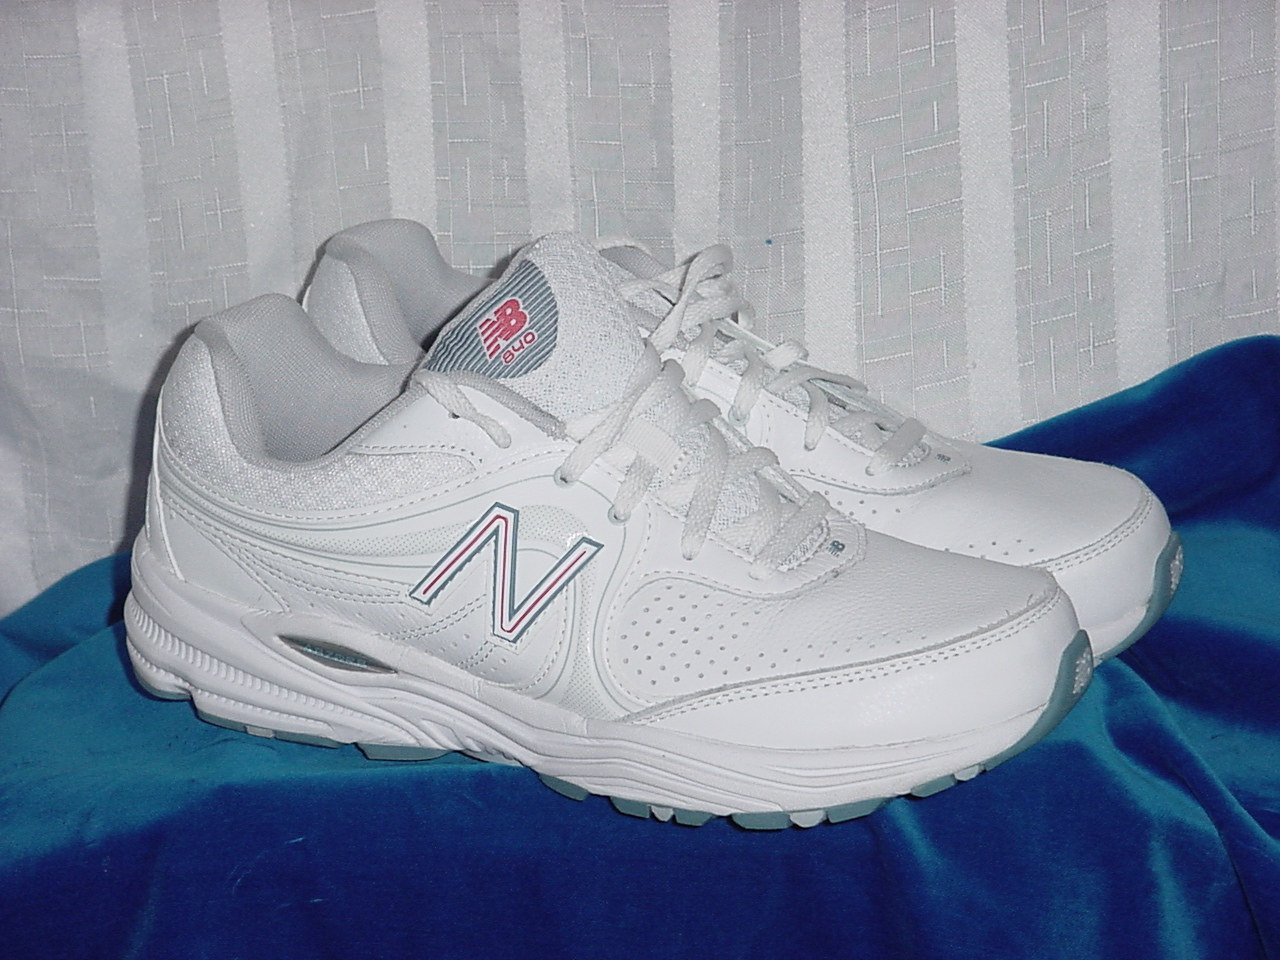 New Balance Women's Walking Training Shoes WW840WP White Pink Size 10 B 189